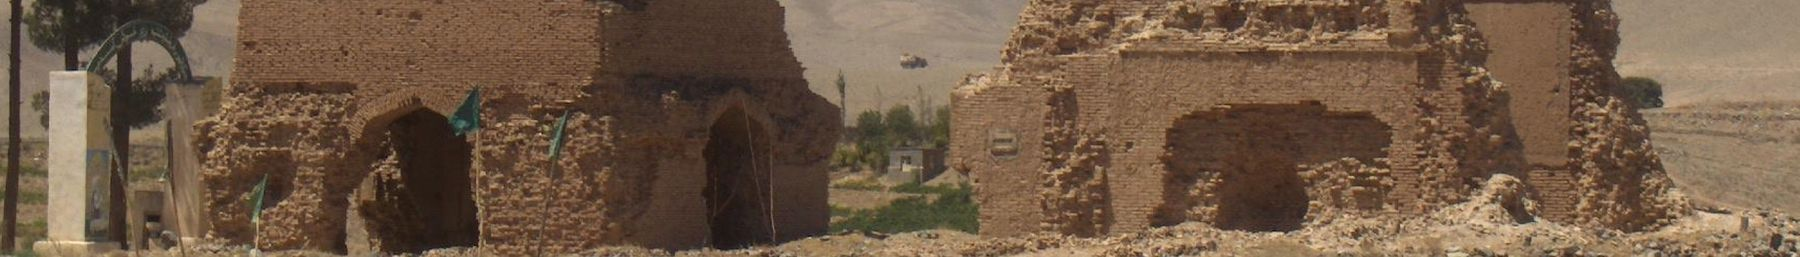 WV banner West Afghanistan Graves in Chist.jpg